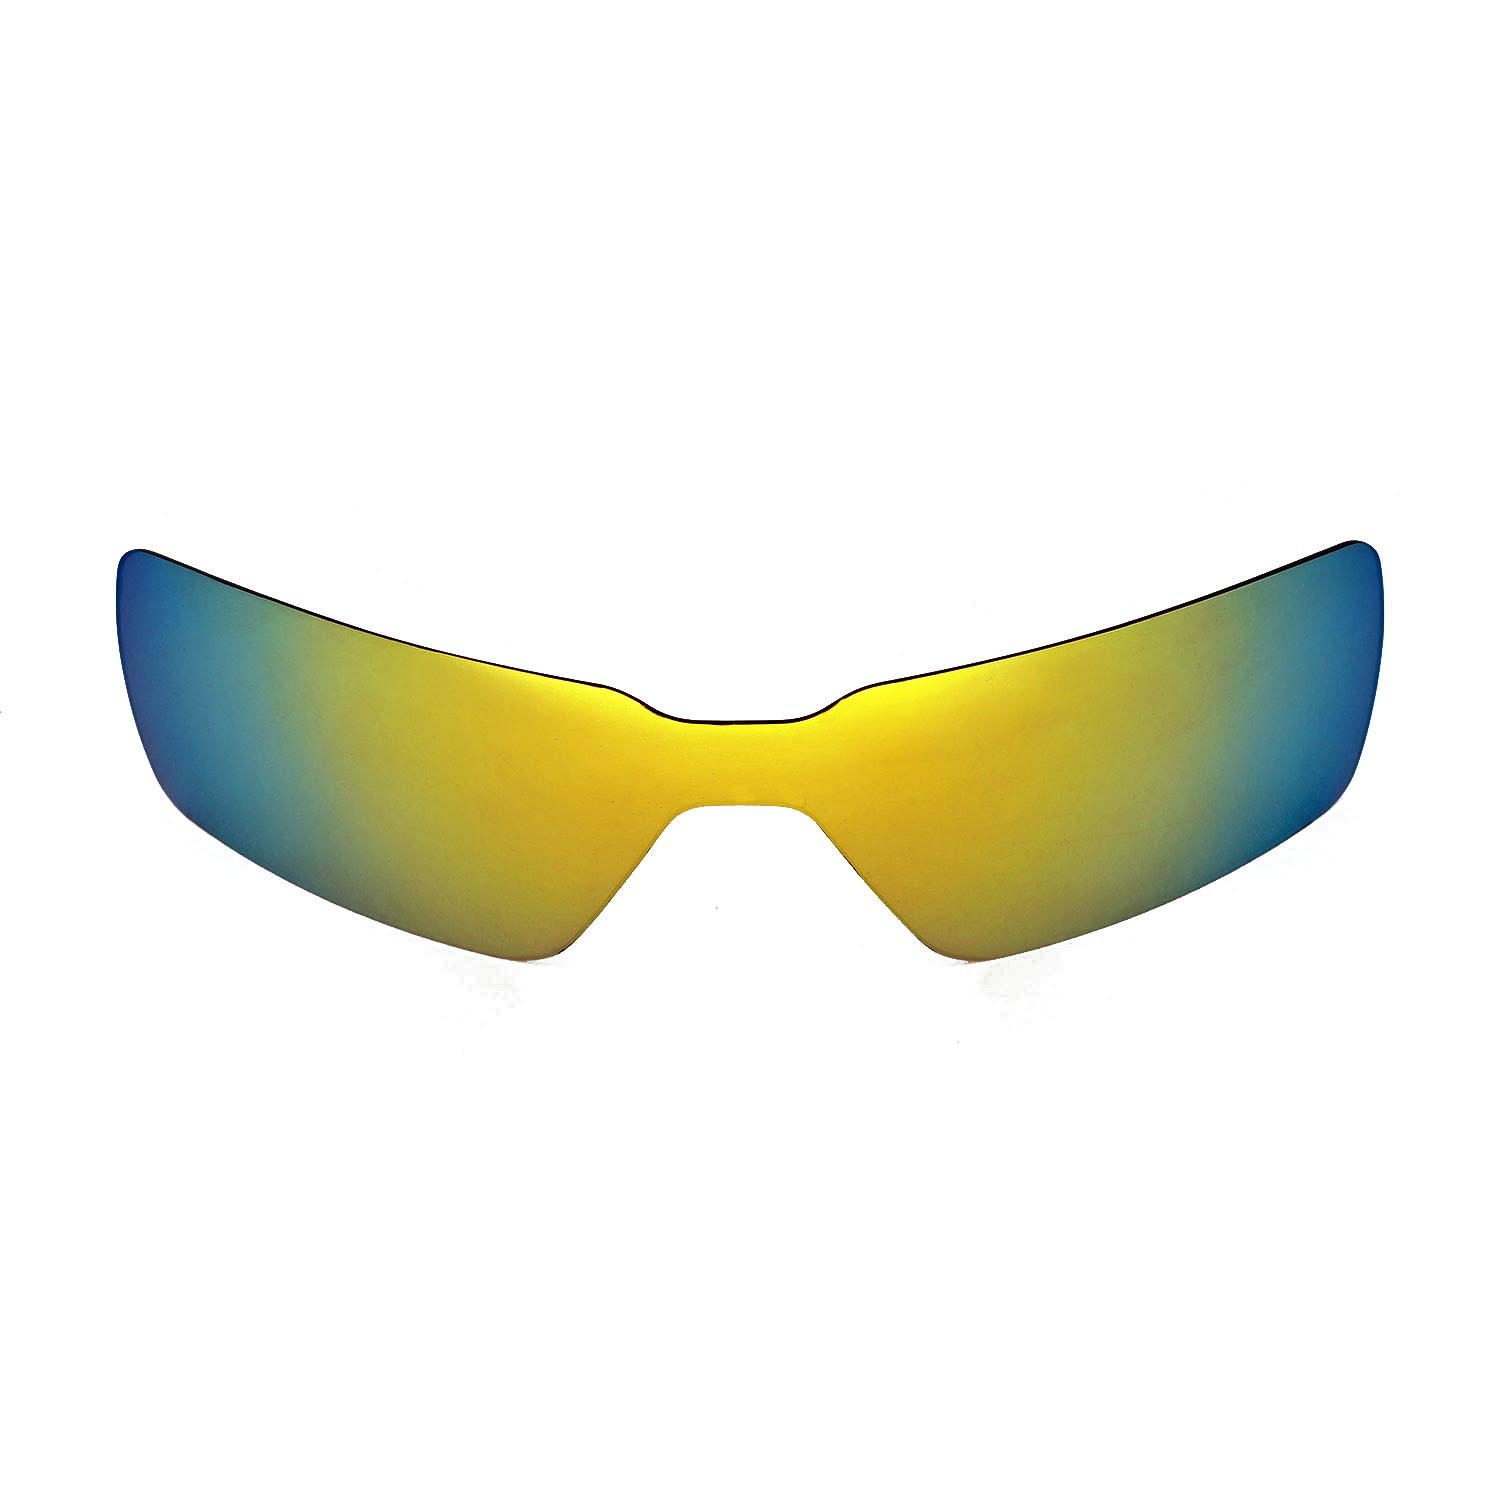 15d41cfaeb Amazon.com  Walleva Replacement Lenses for Oakley Probation Sunglasses -  Multiple Options Available (24K Gold Mirror Coated - Polarized)  Shoes